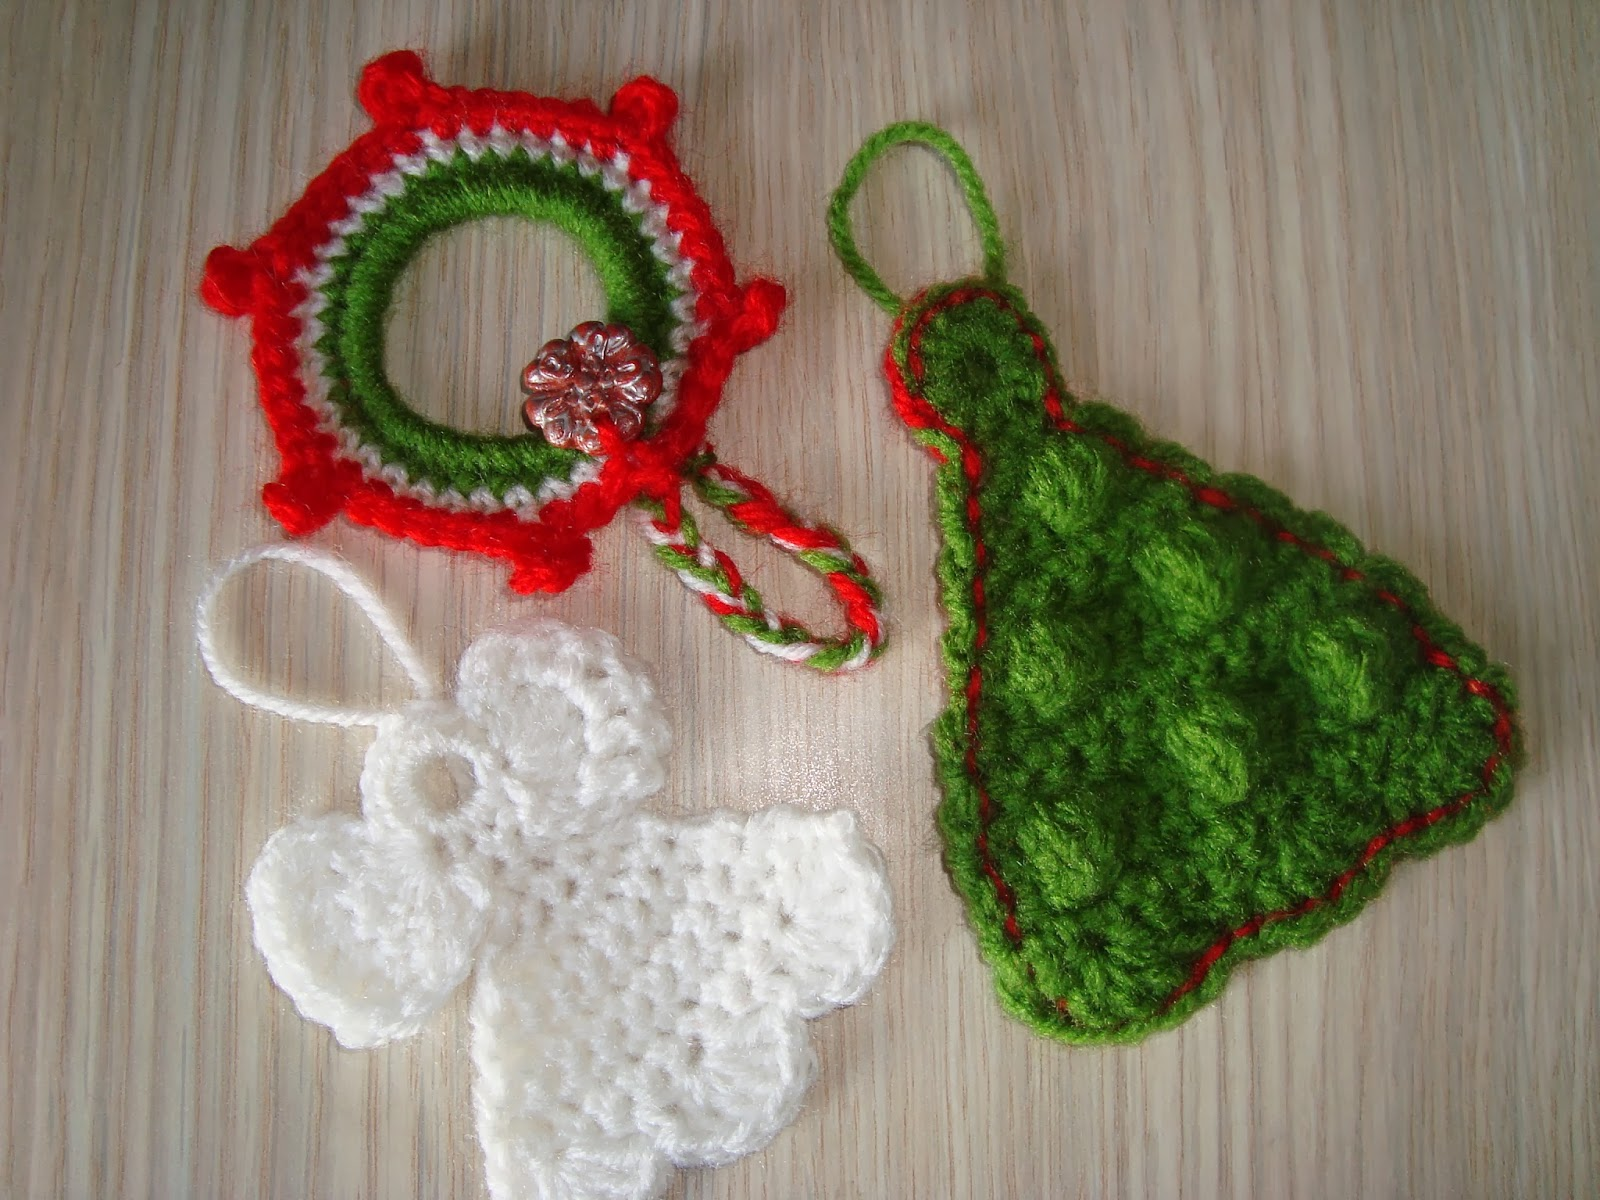 Handmade by Camelia: Pattern: Three Ornaments Crocheted for Christmas